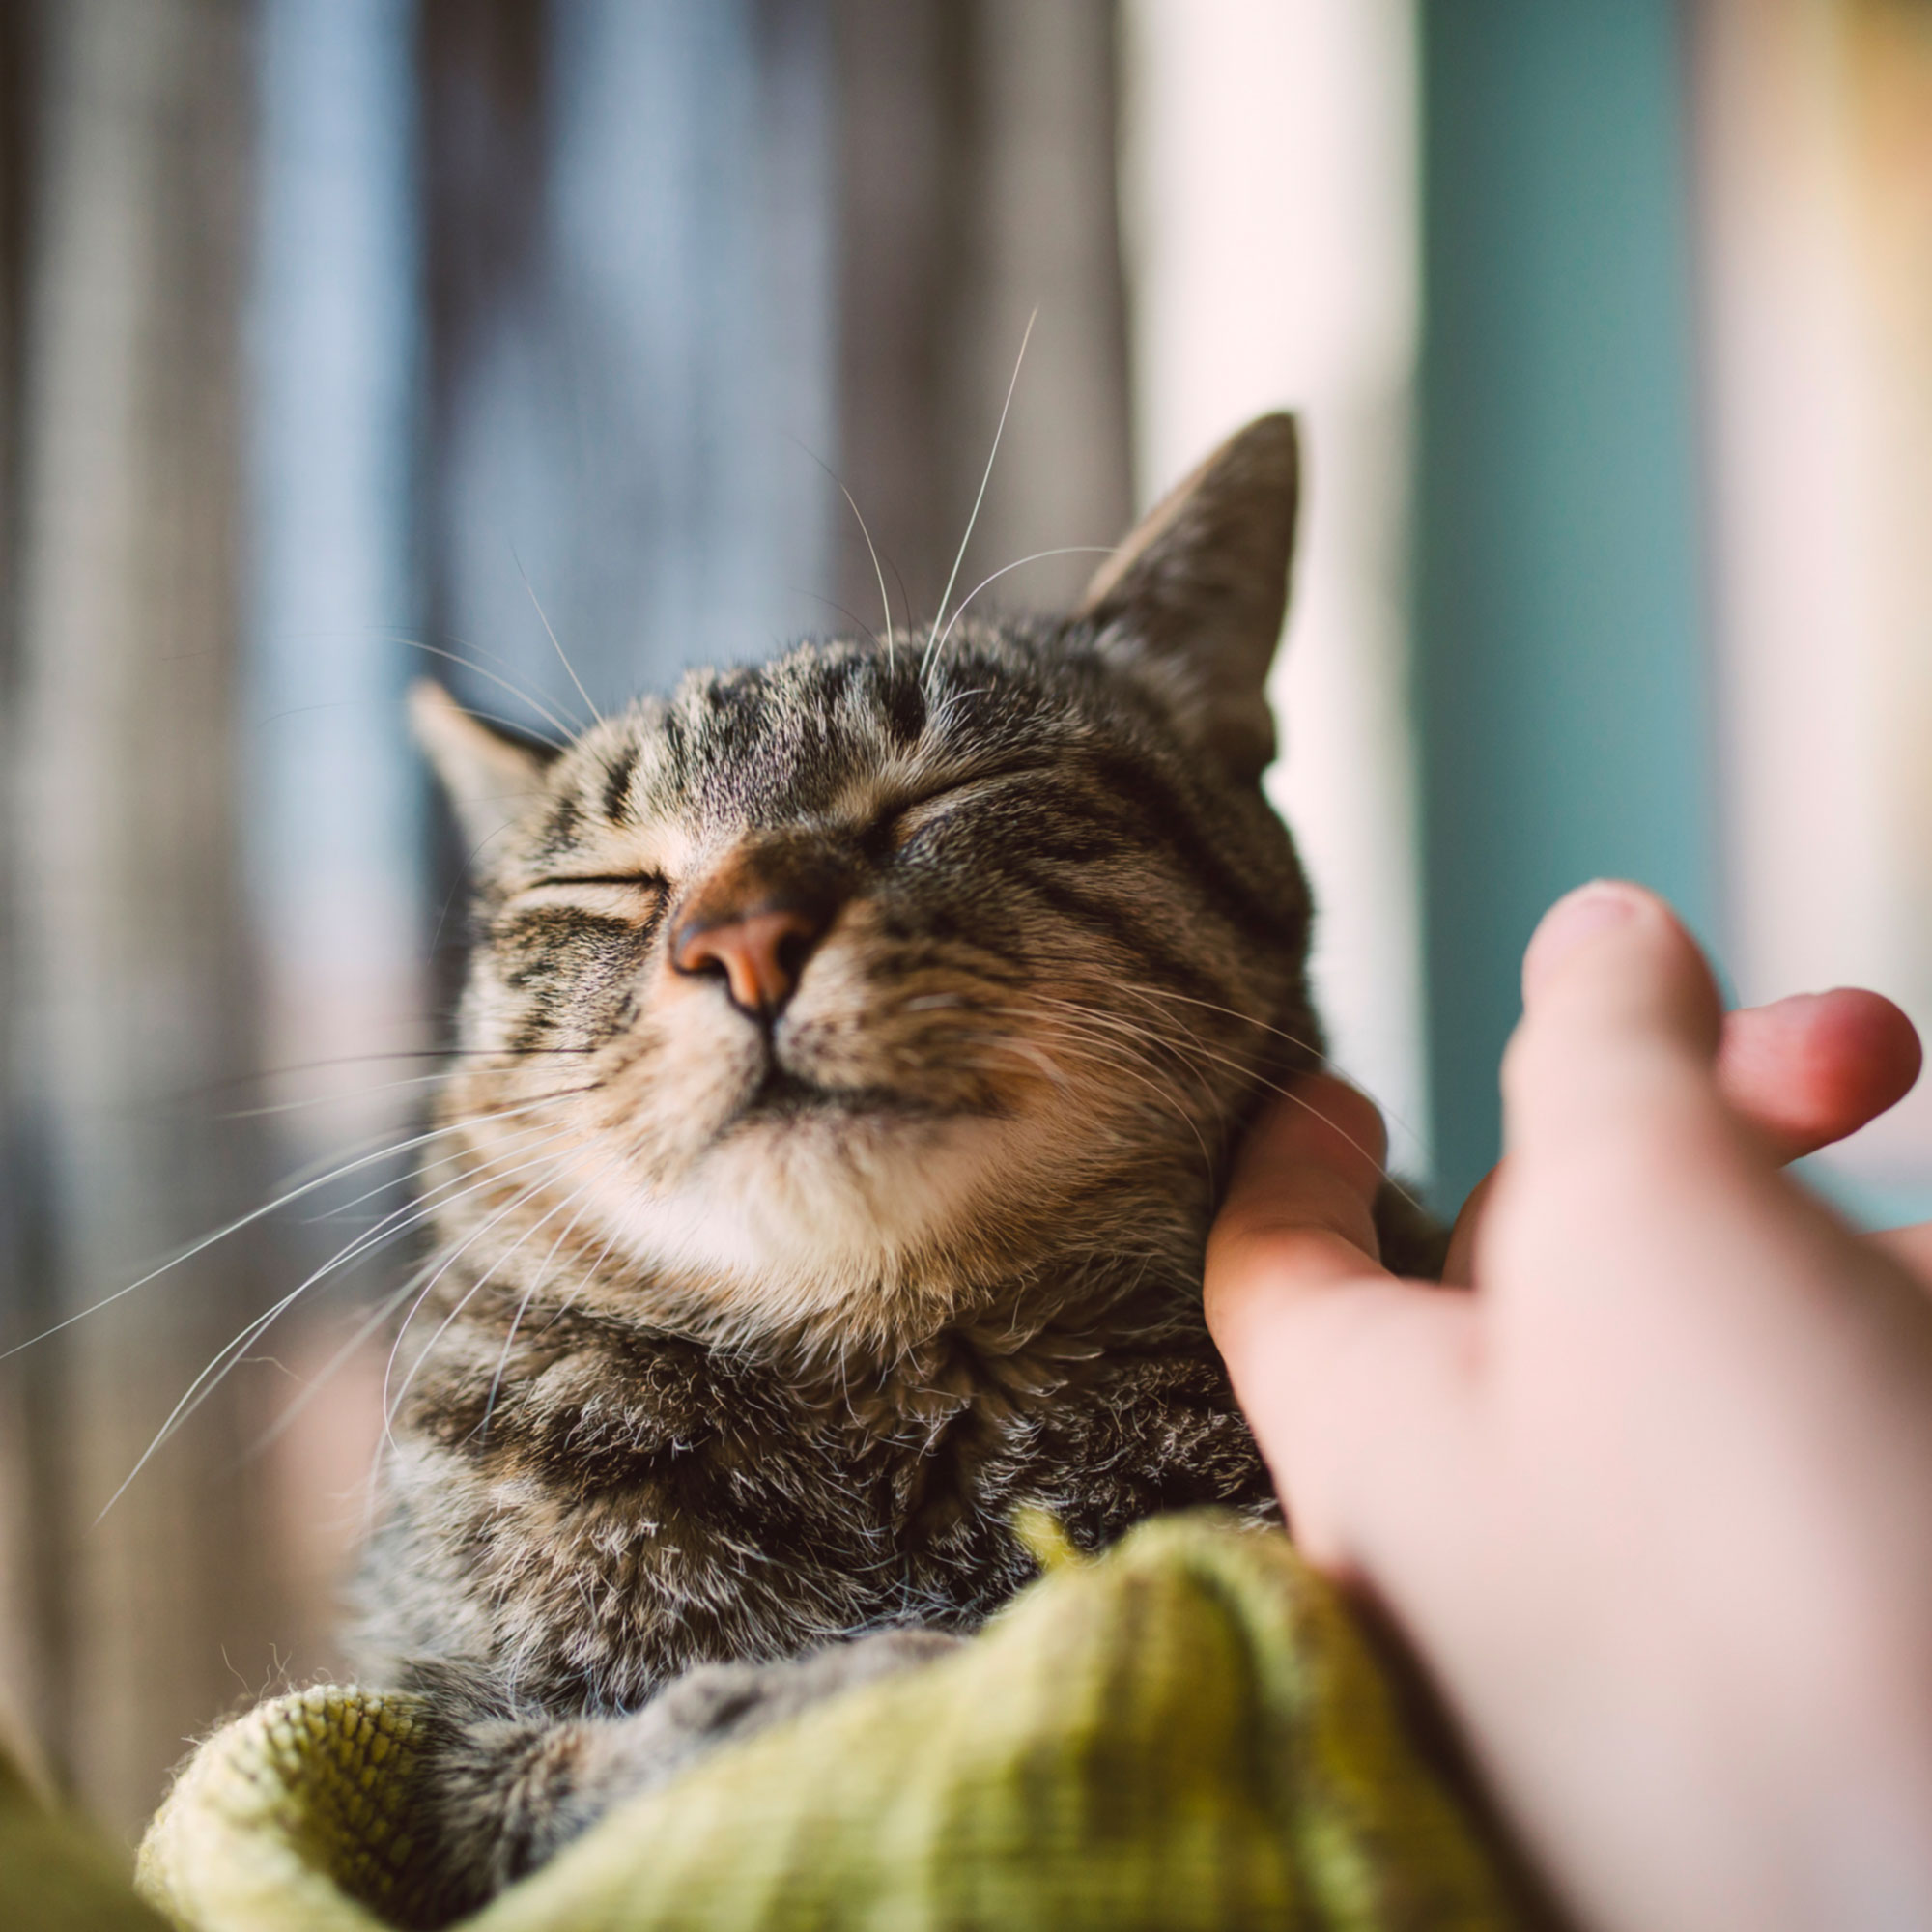 cat being pet and (obviously) purring with eyes closed